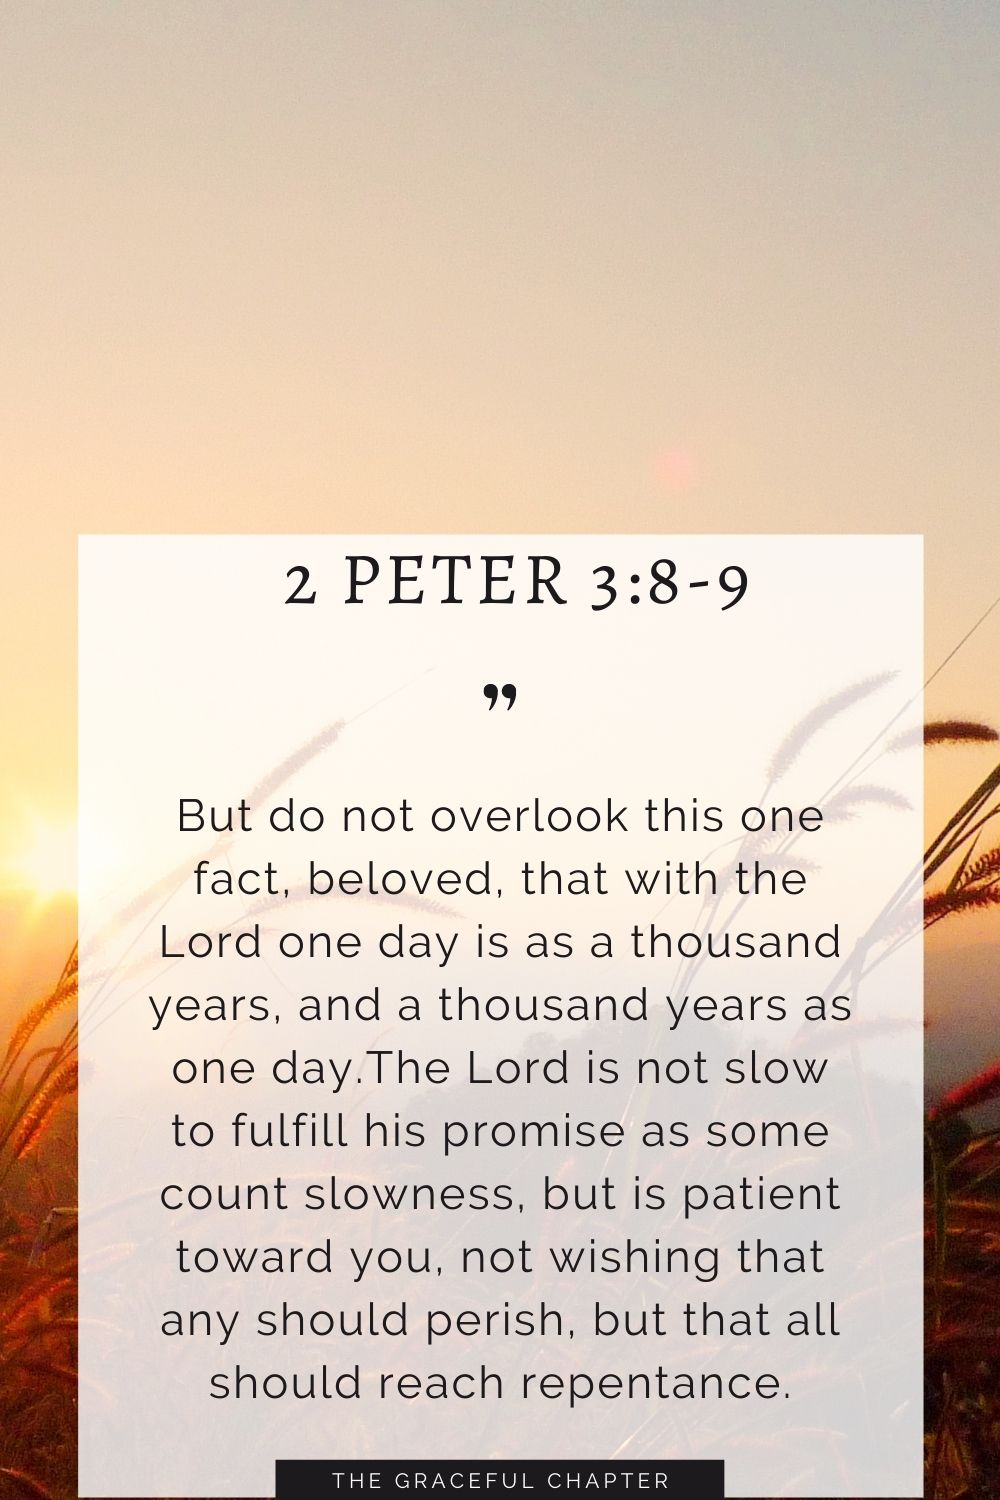 But do not overlook this one fact, beloved, that with the Lord one day is as a thousand years, and a thousand years as one day.The Lord is not slow to fulfill his promise as some count slowness, but is patient toward you, not wishing that any should perish, but that all should reach repentance. 2 Peter 3:8-9